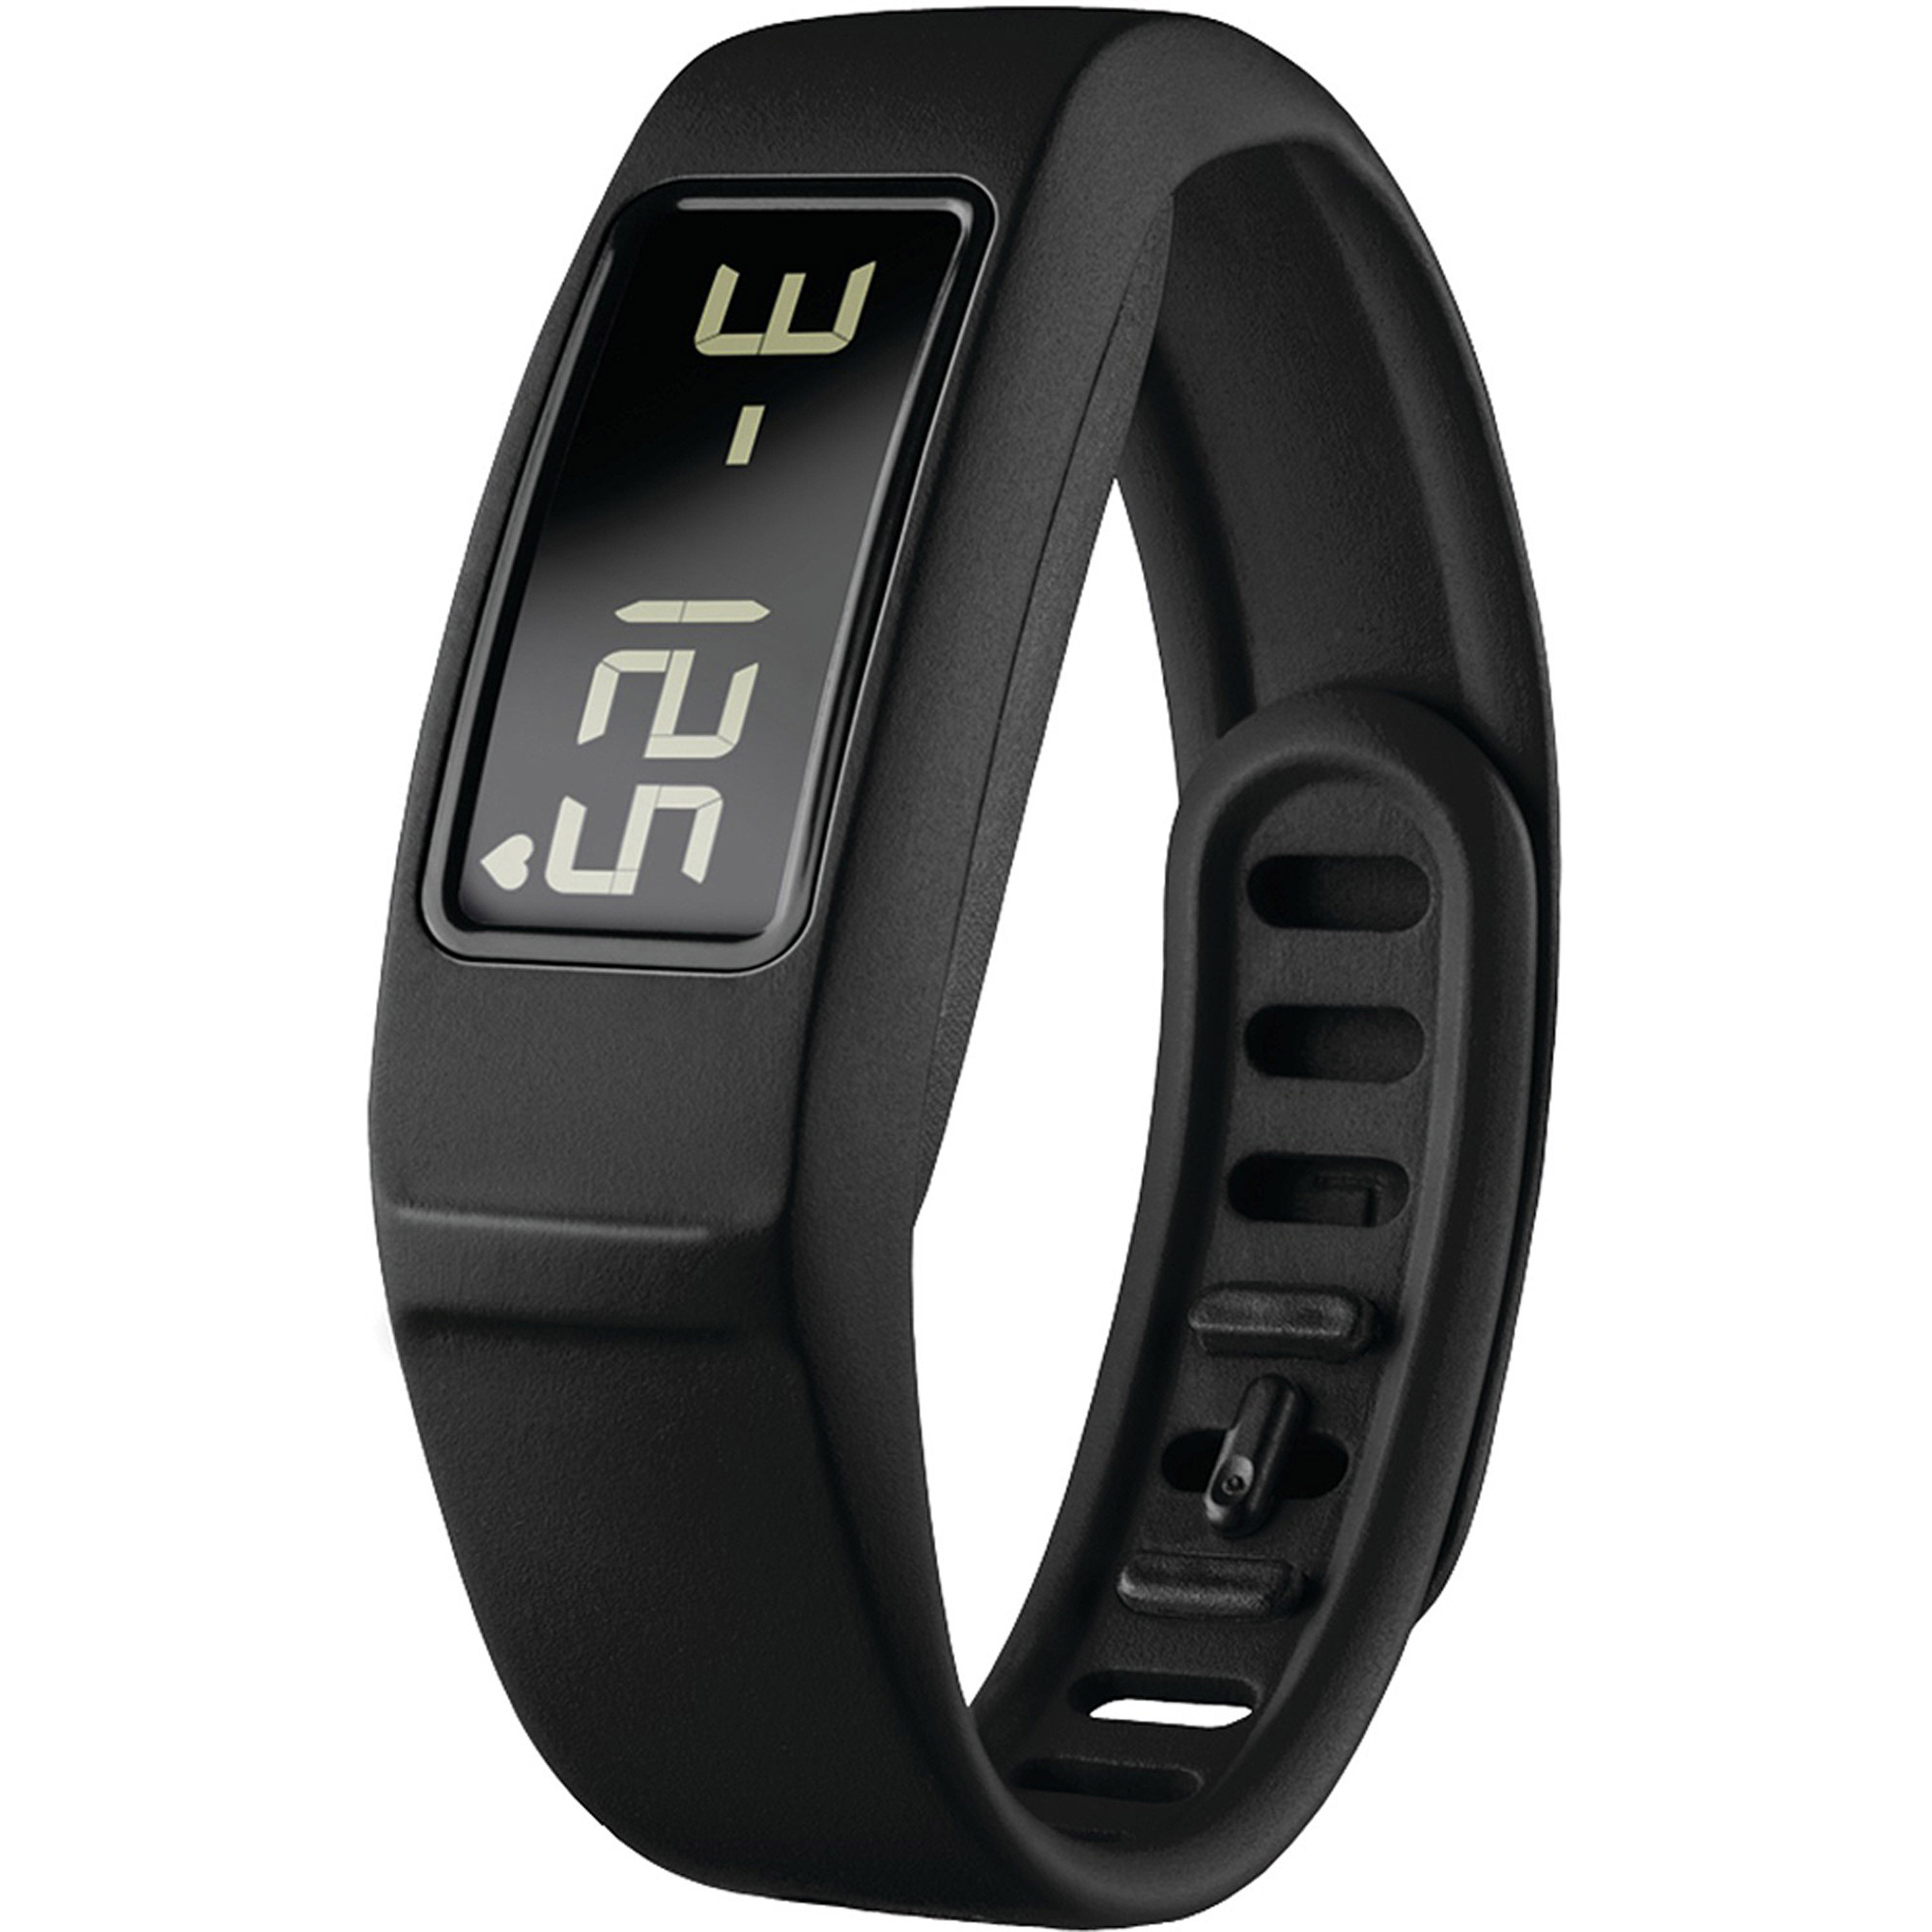 Garmin Vivofit 2 Bundle with Heart Rate Monitor, Assorted Colors